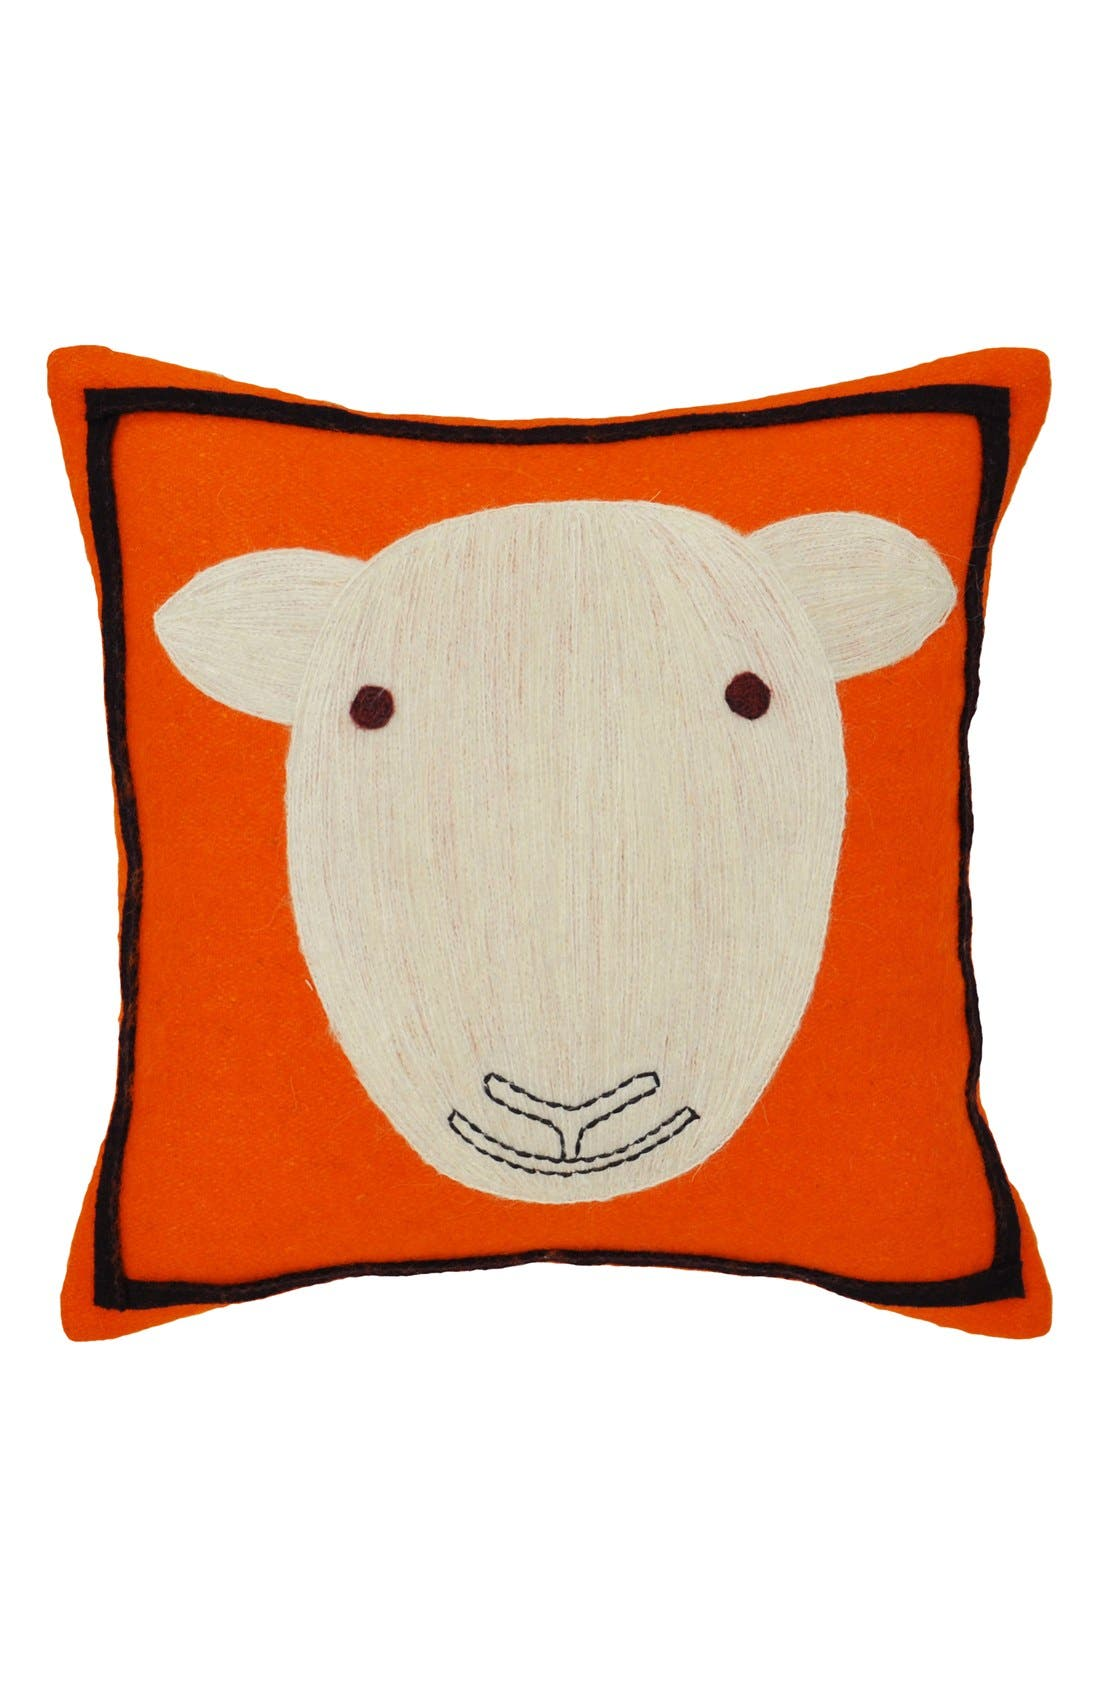 Alternate Image 1 Selected - Amity Home Sheep Decorative Pillow